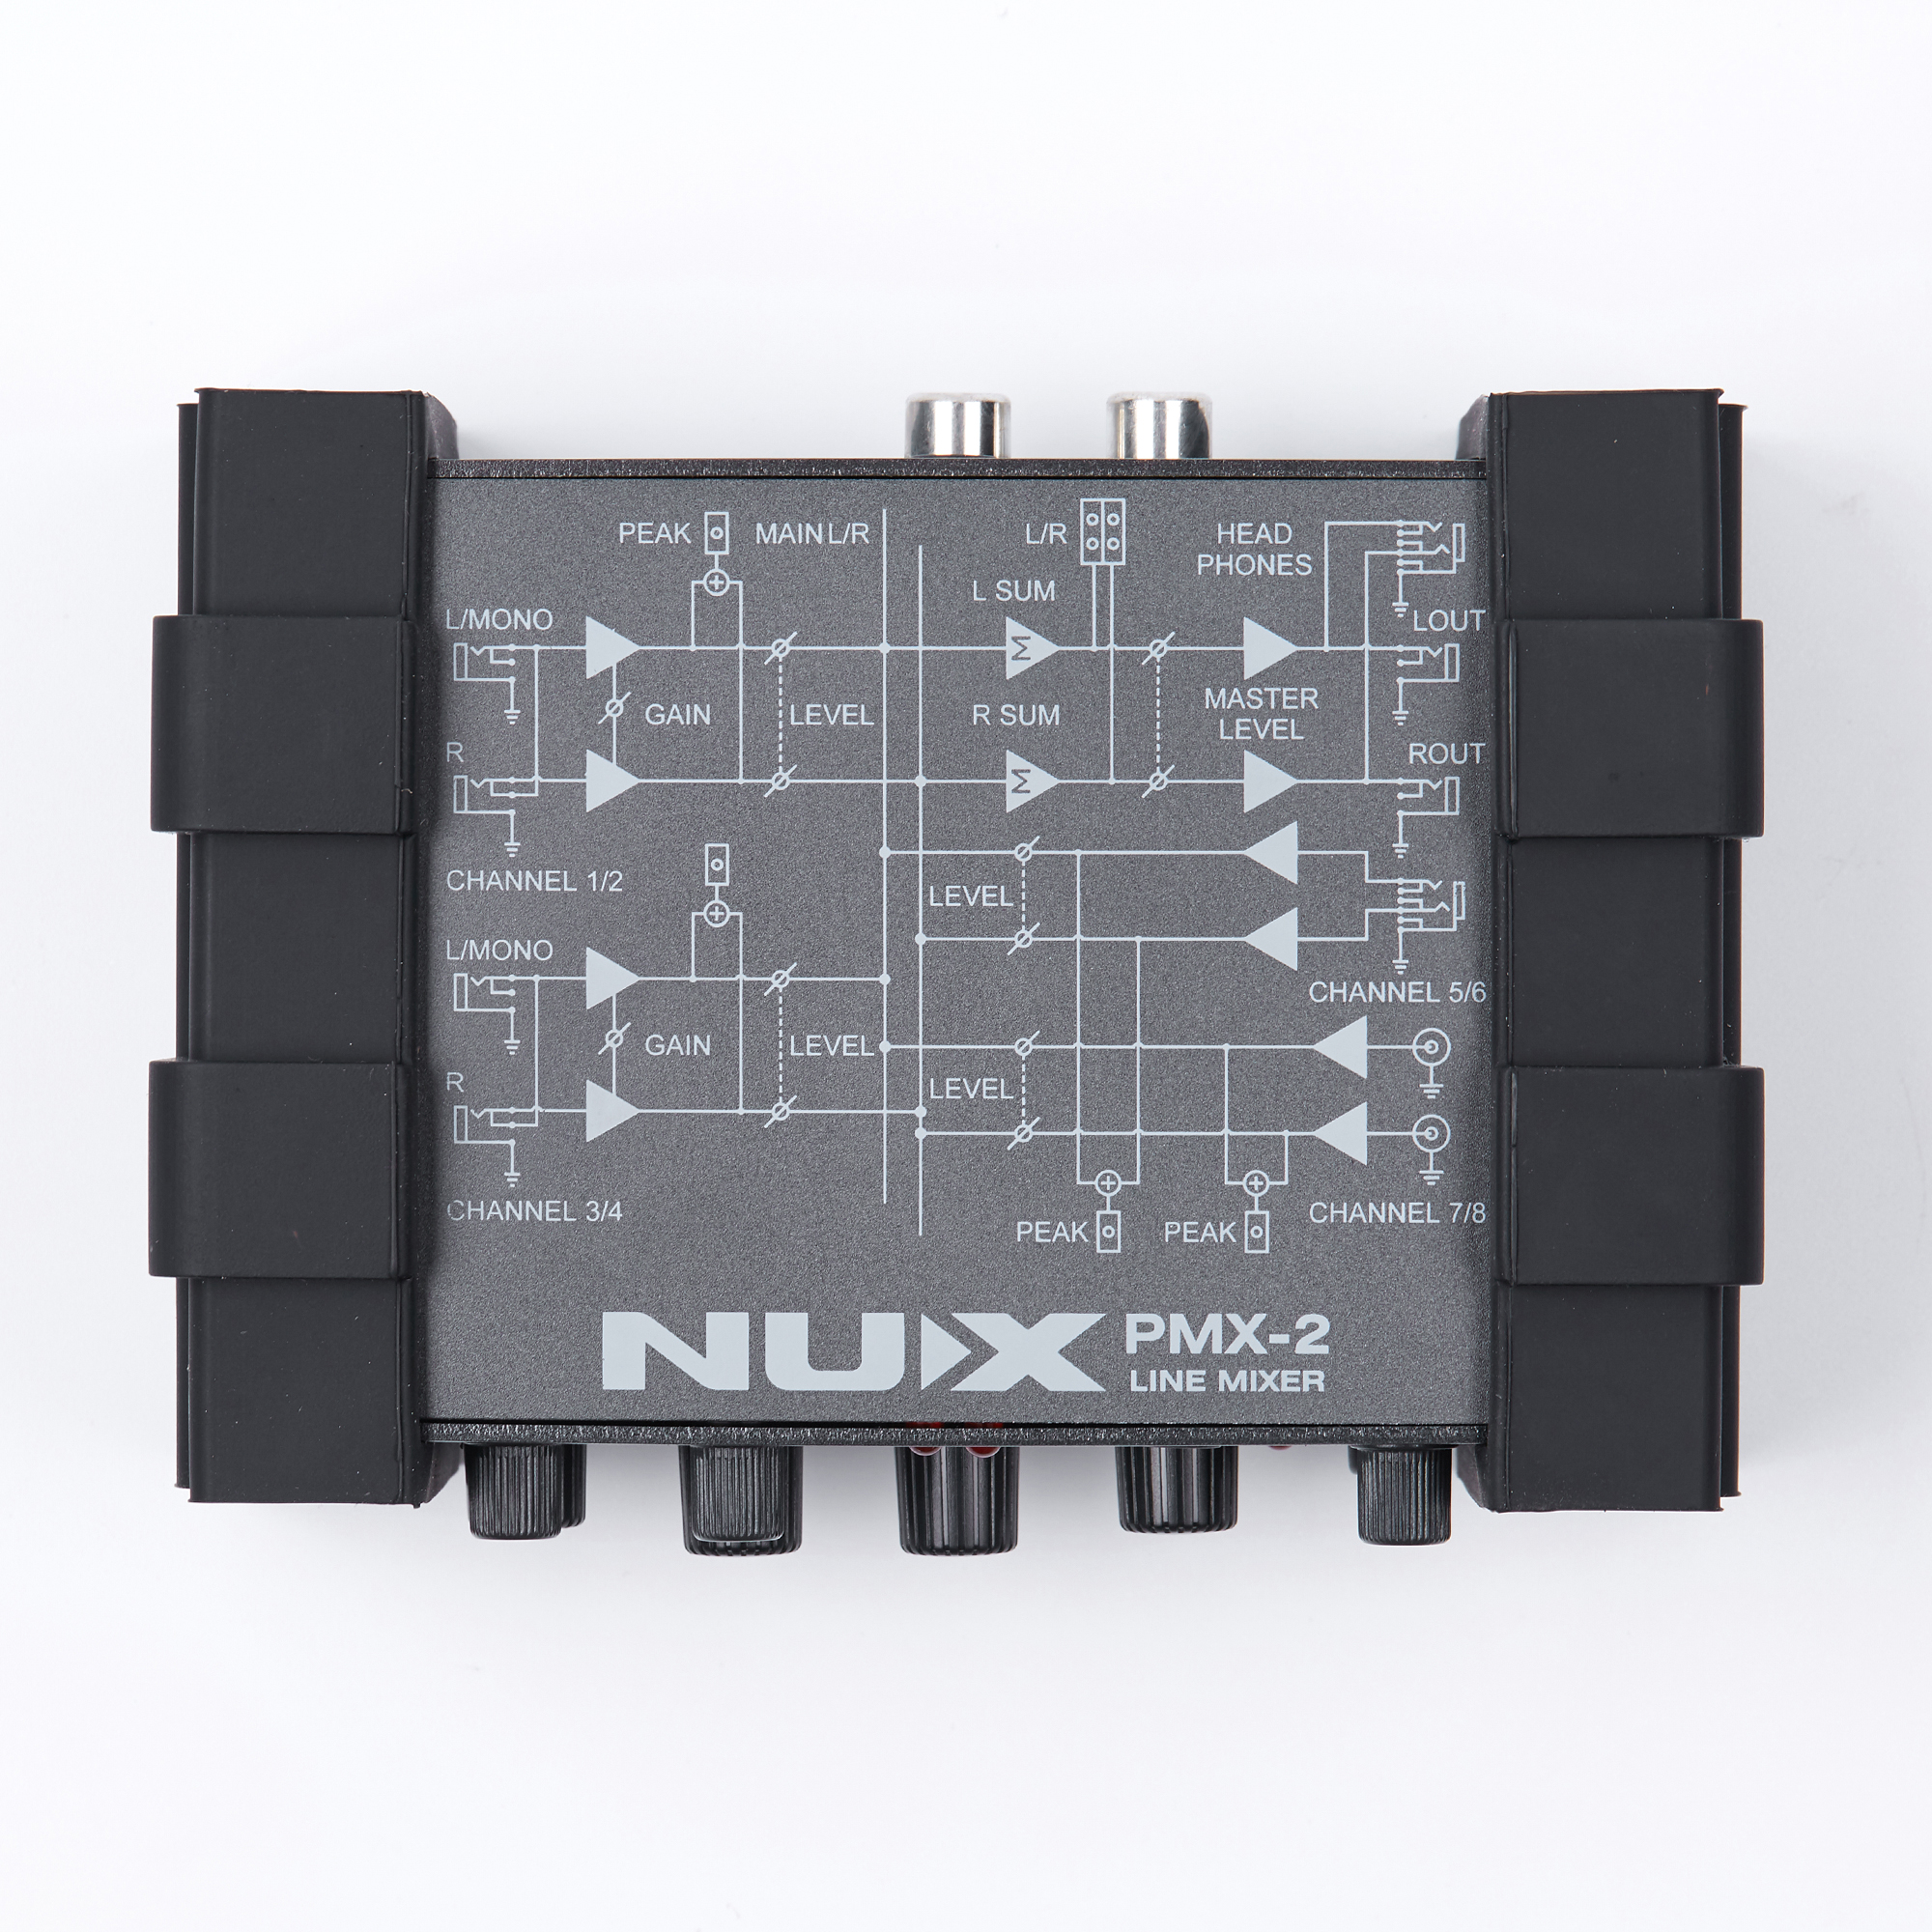 Gain Control 8 Inputs and 2 Outputs NUX PMX-2 Multi-Channel Mini Mixer 30 Musical Instruments Accessories for Guitar Bass Player formulation and evaluation of microspheres by mixed solvency concept